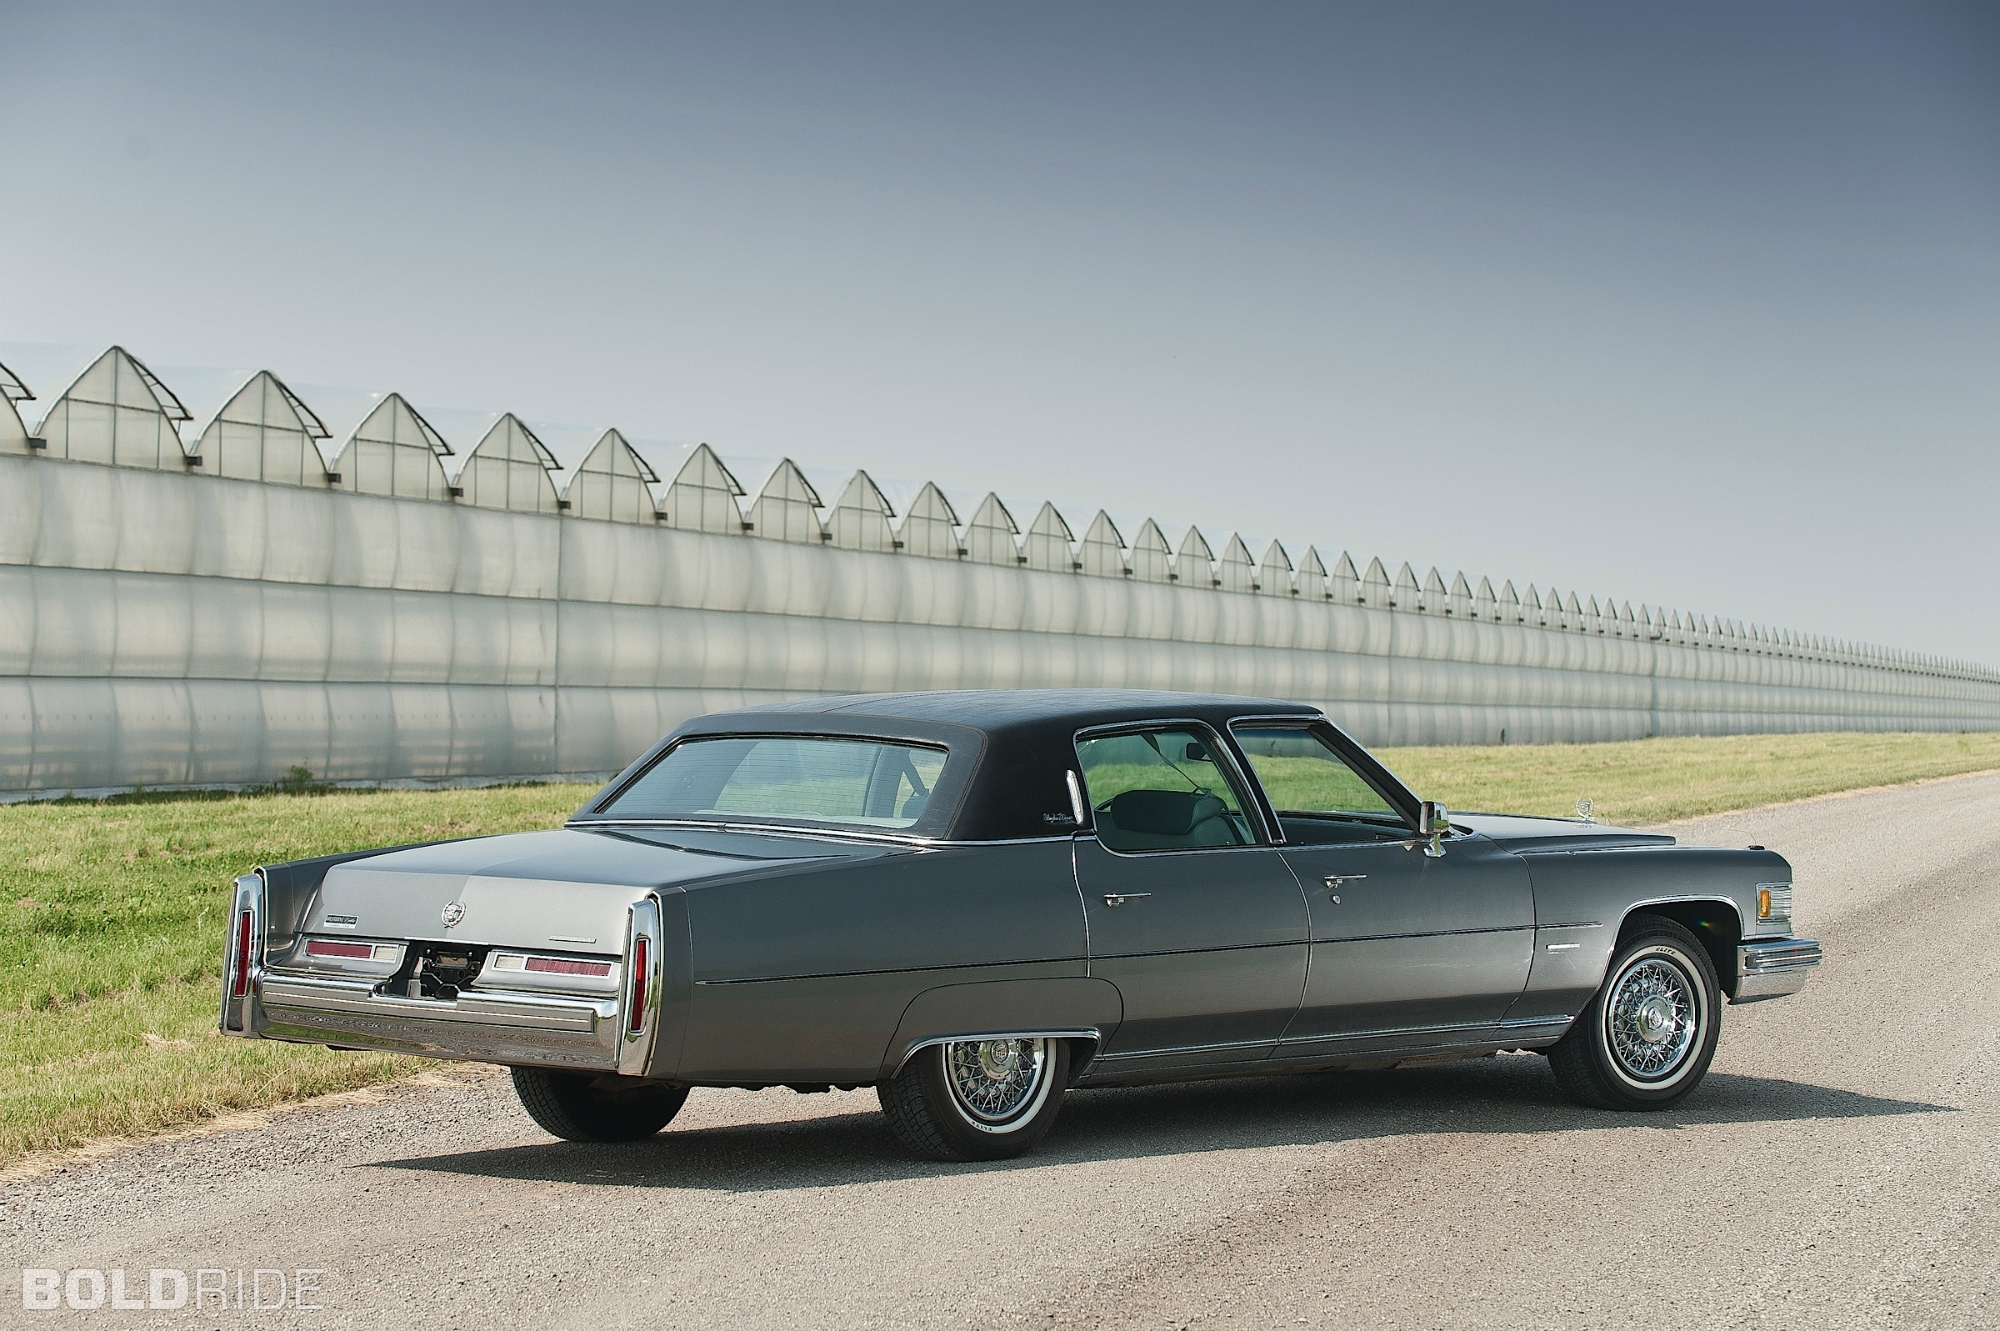 Cadillac Fleetwood 75 Special presidential tourer photos.